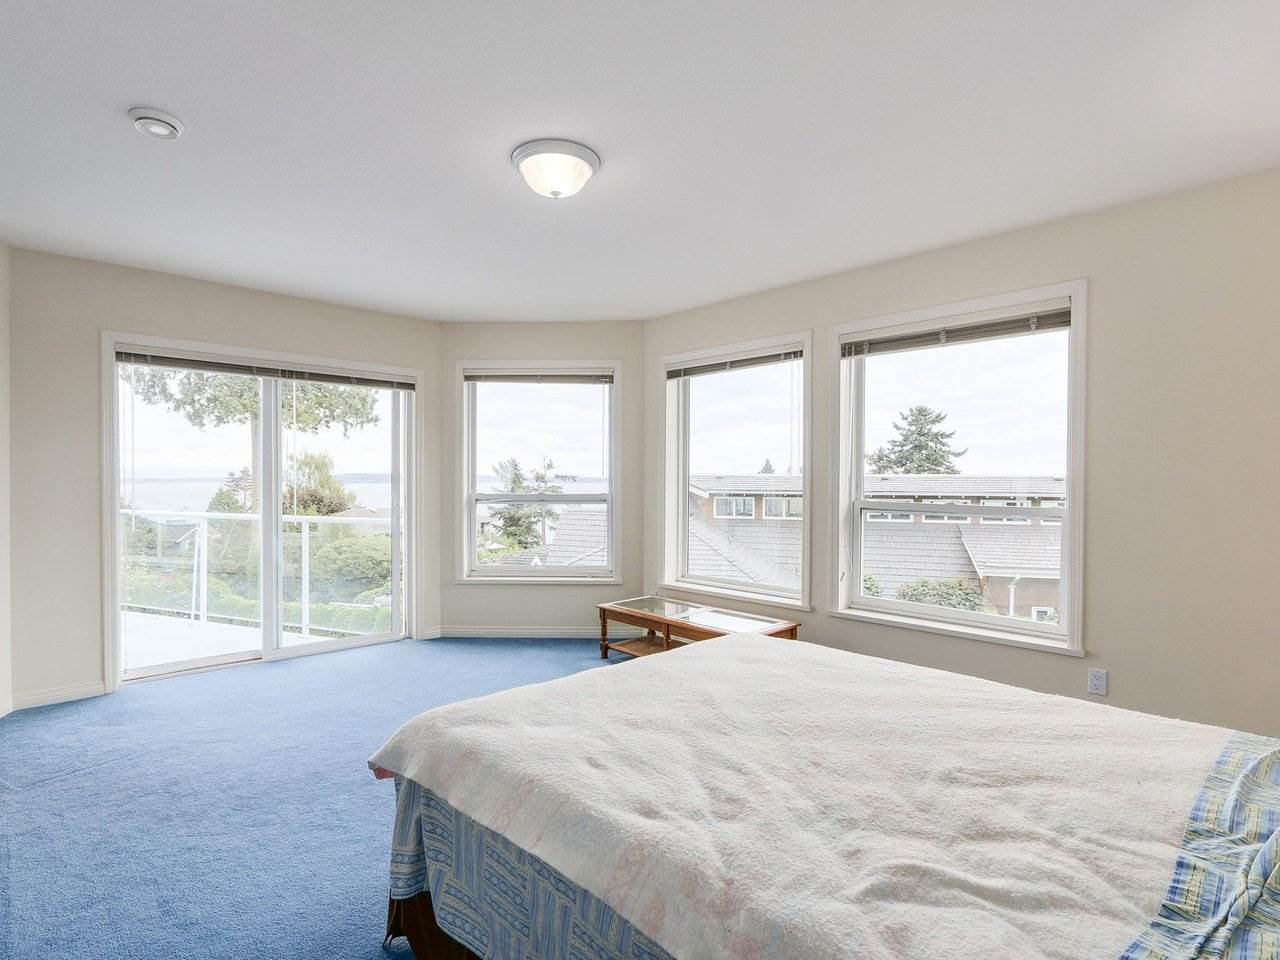 Photo 13: Photos: 1325 132B Street in Surrey: Crescent Bch Ocean Pk. House for sale (South Surrey White Rock)  : MLS®# R2185643